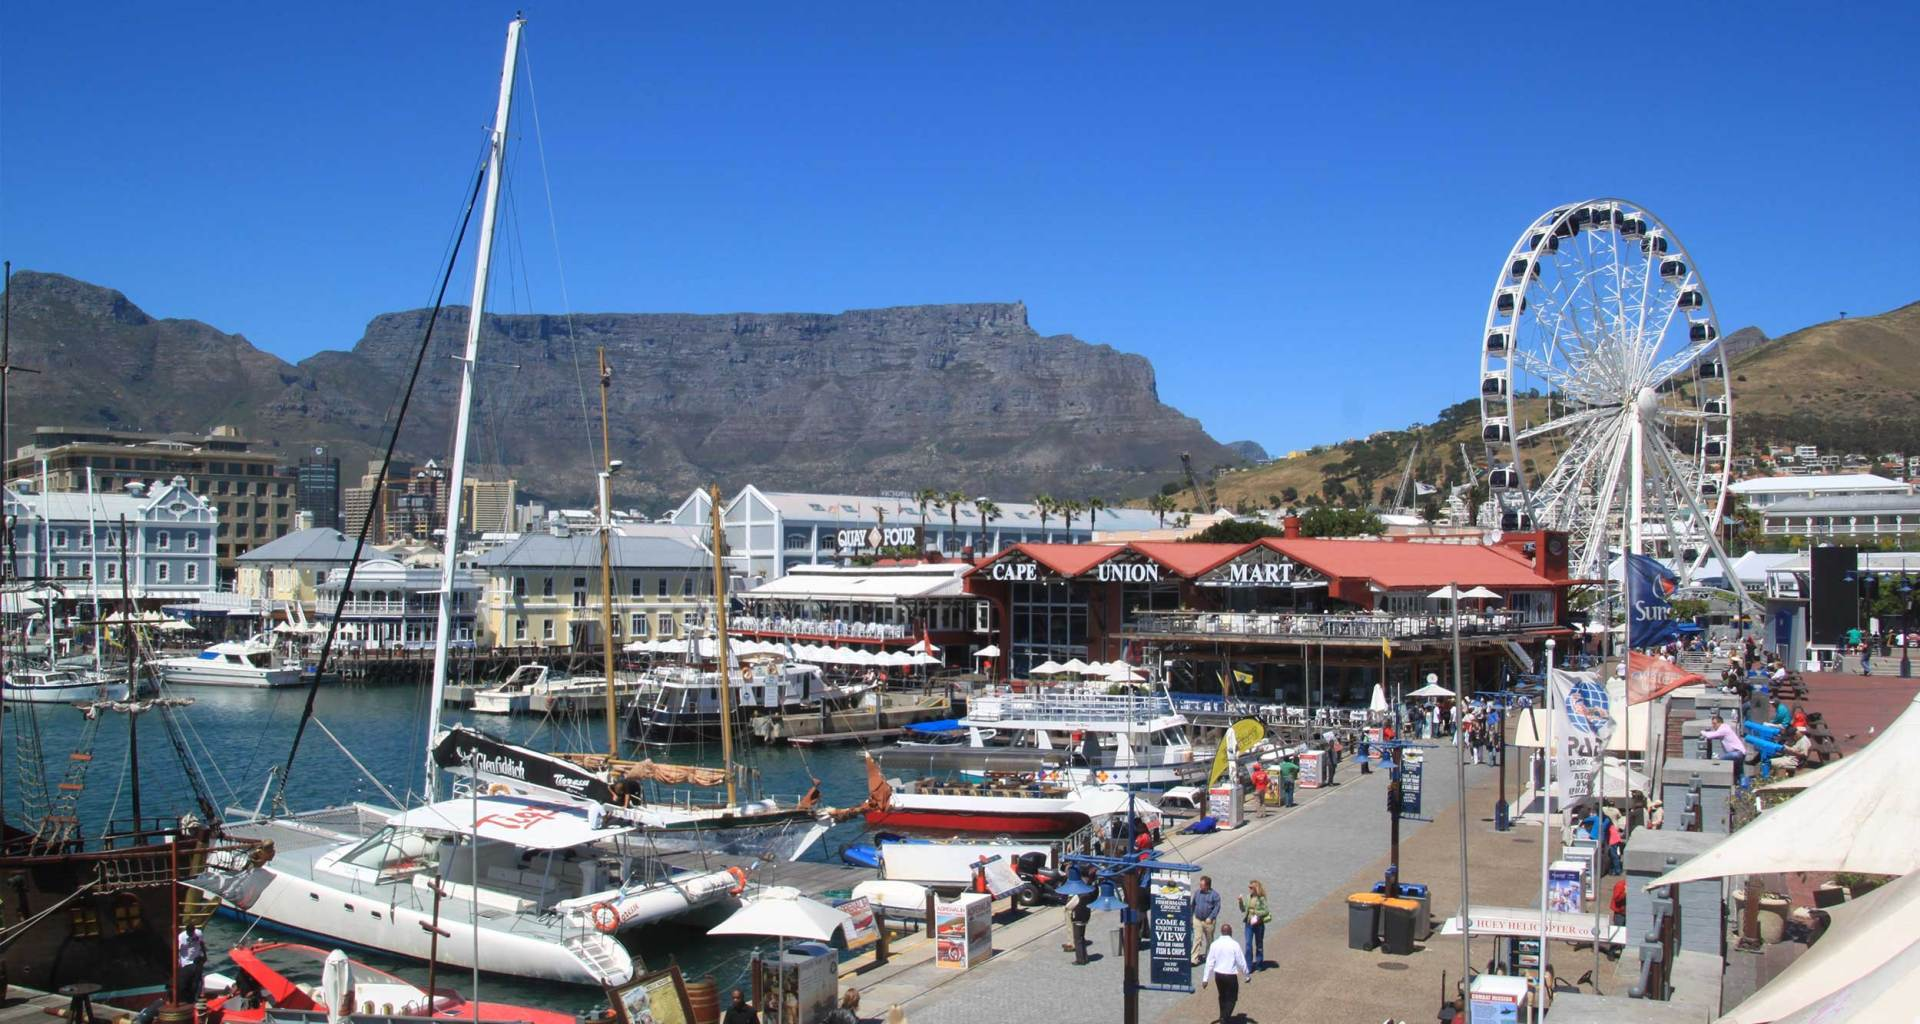 Cape Town boardwalk with Ferris wheel and mountain in background.